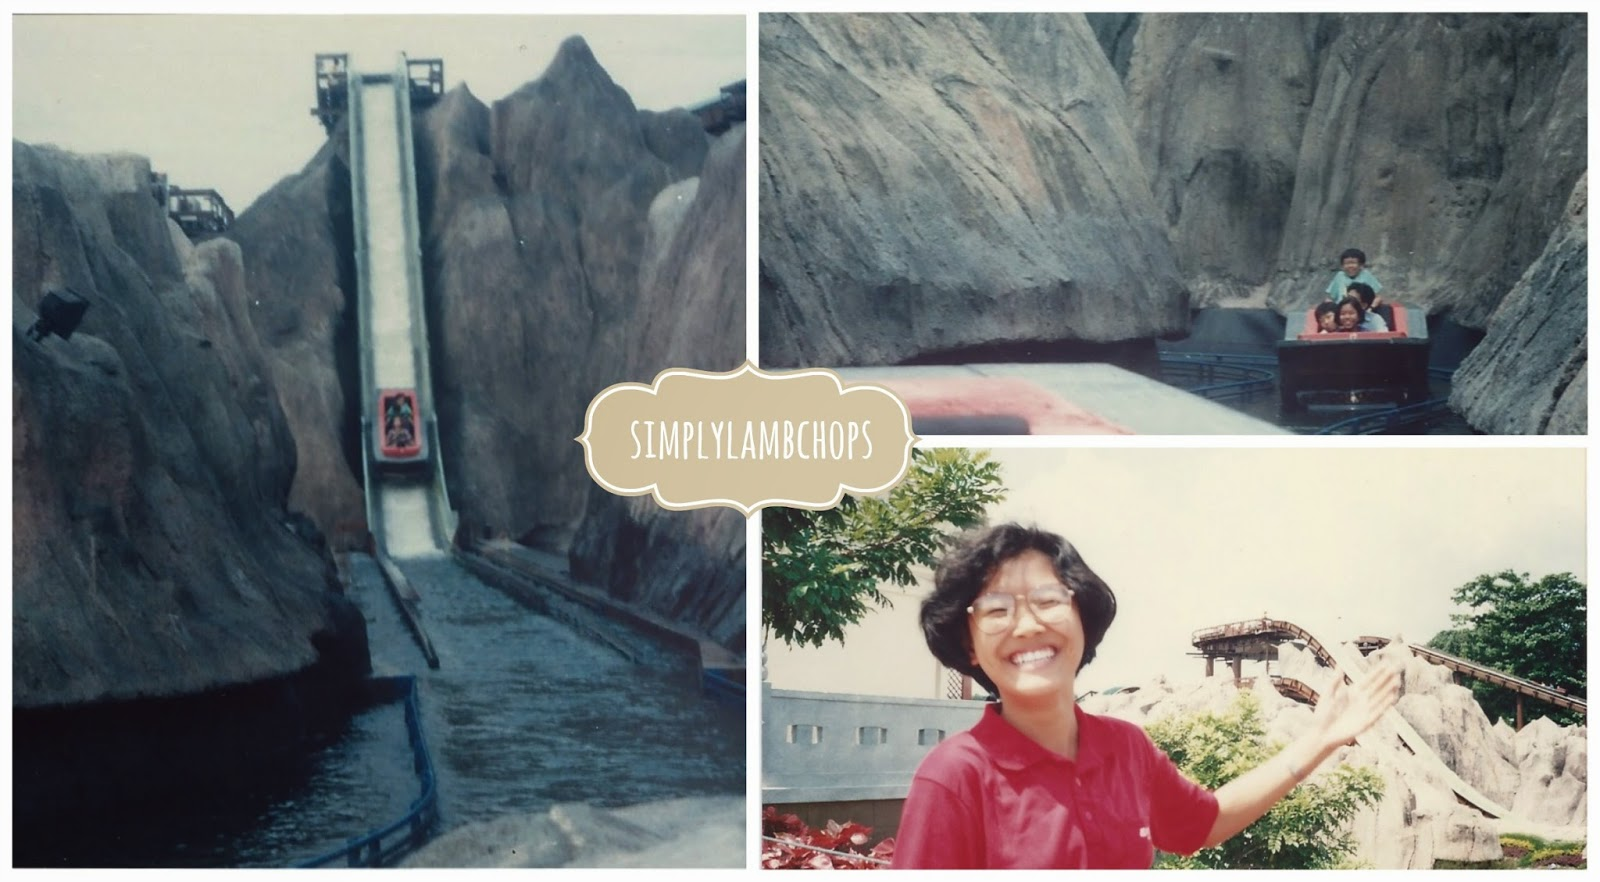 Memories of the Haw Par Villa - Our SG50 e-book project